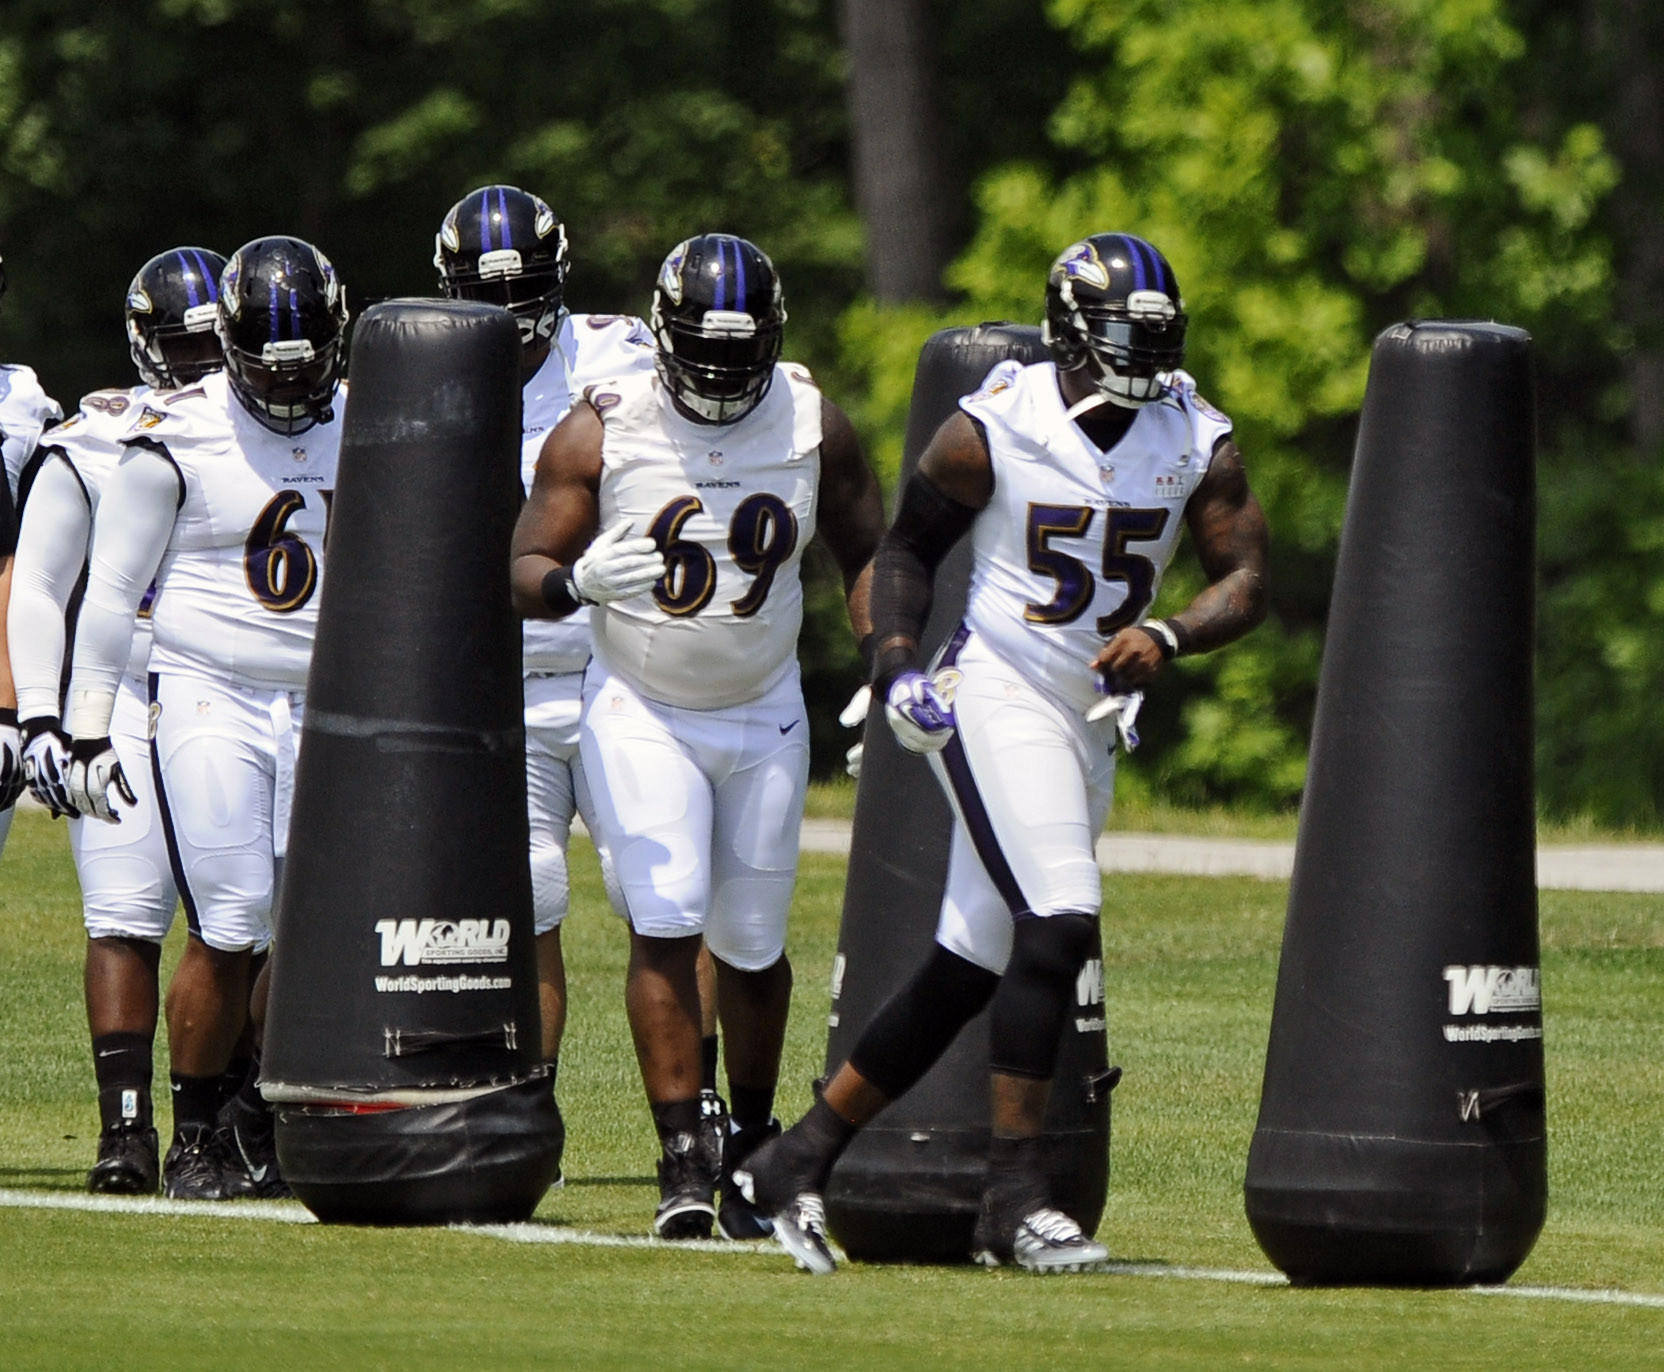 Ravens linebacker Terrell Suggs takes part in minicamp in June.